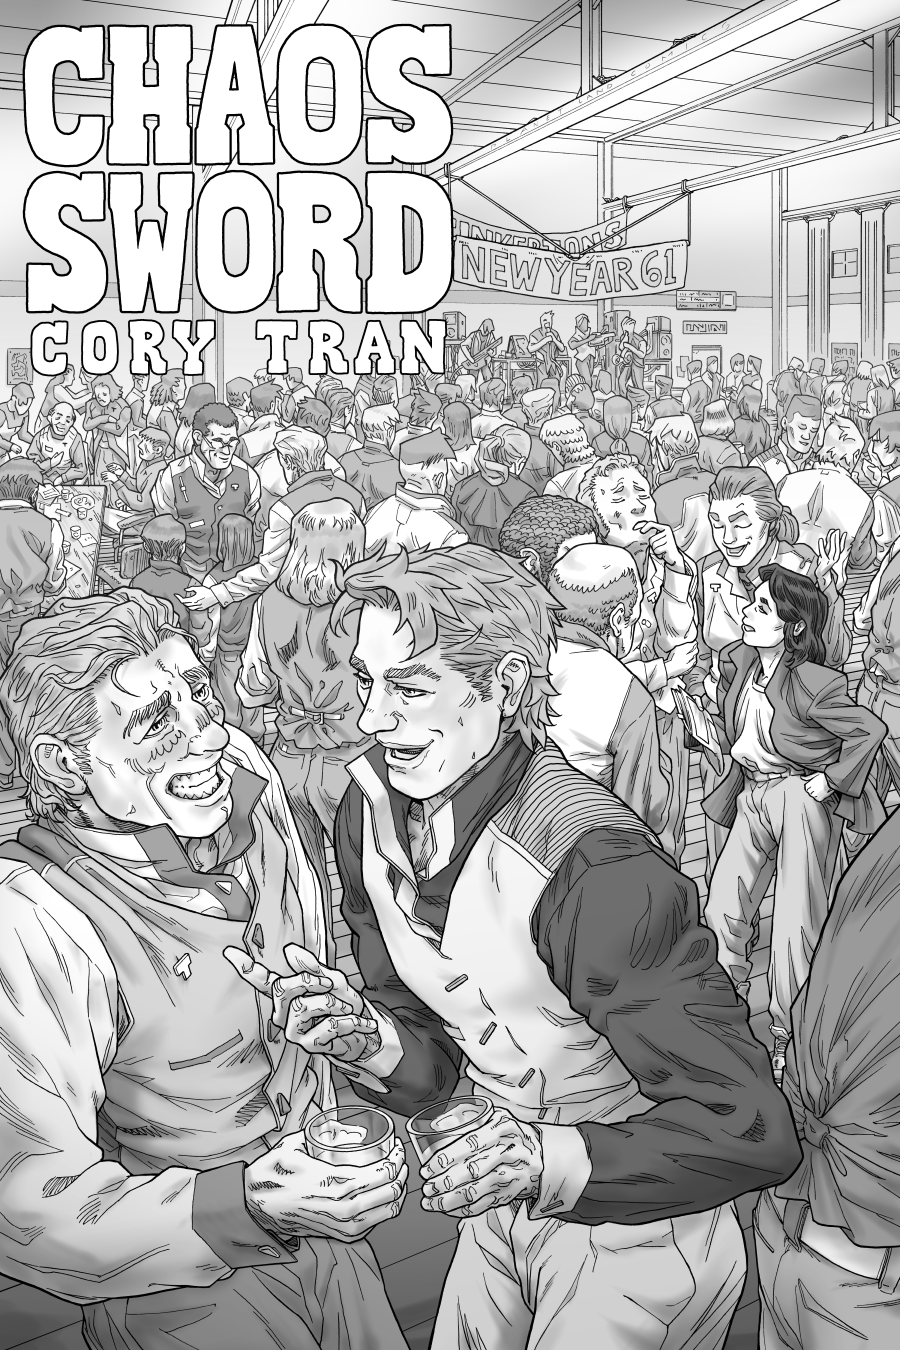 Chaos Sword c2p3 Cover2 by Cory Tran